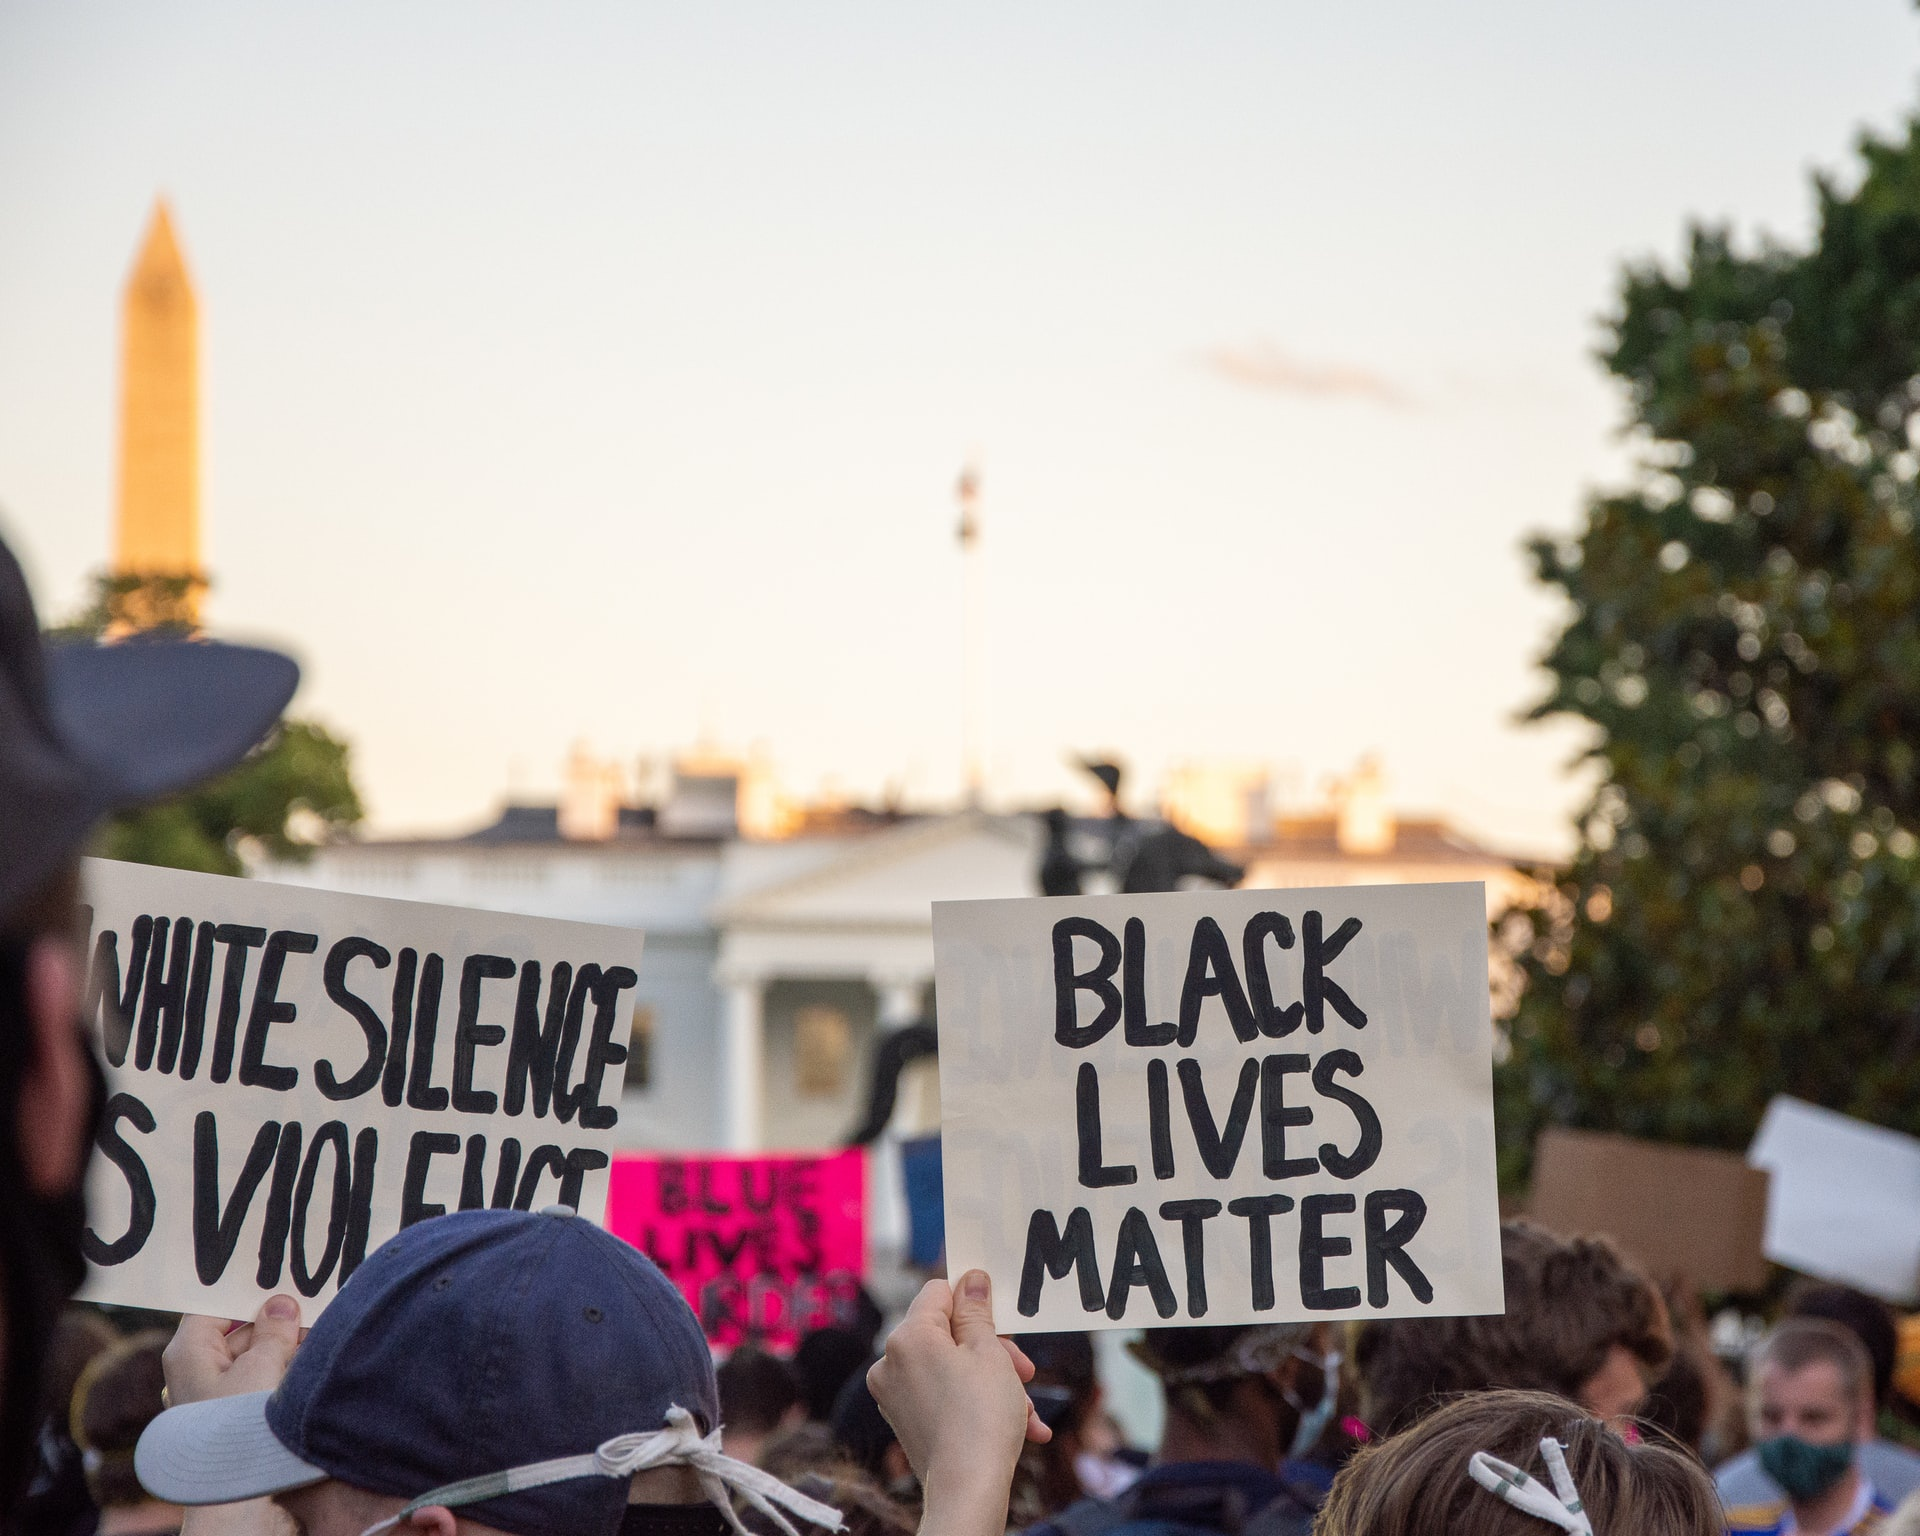 Resources During the Black Lives Matter Movement